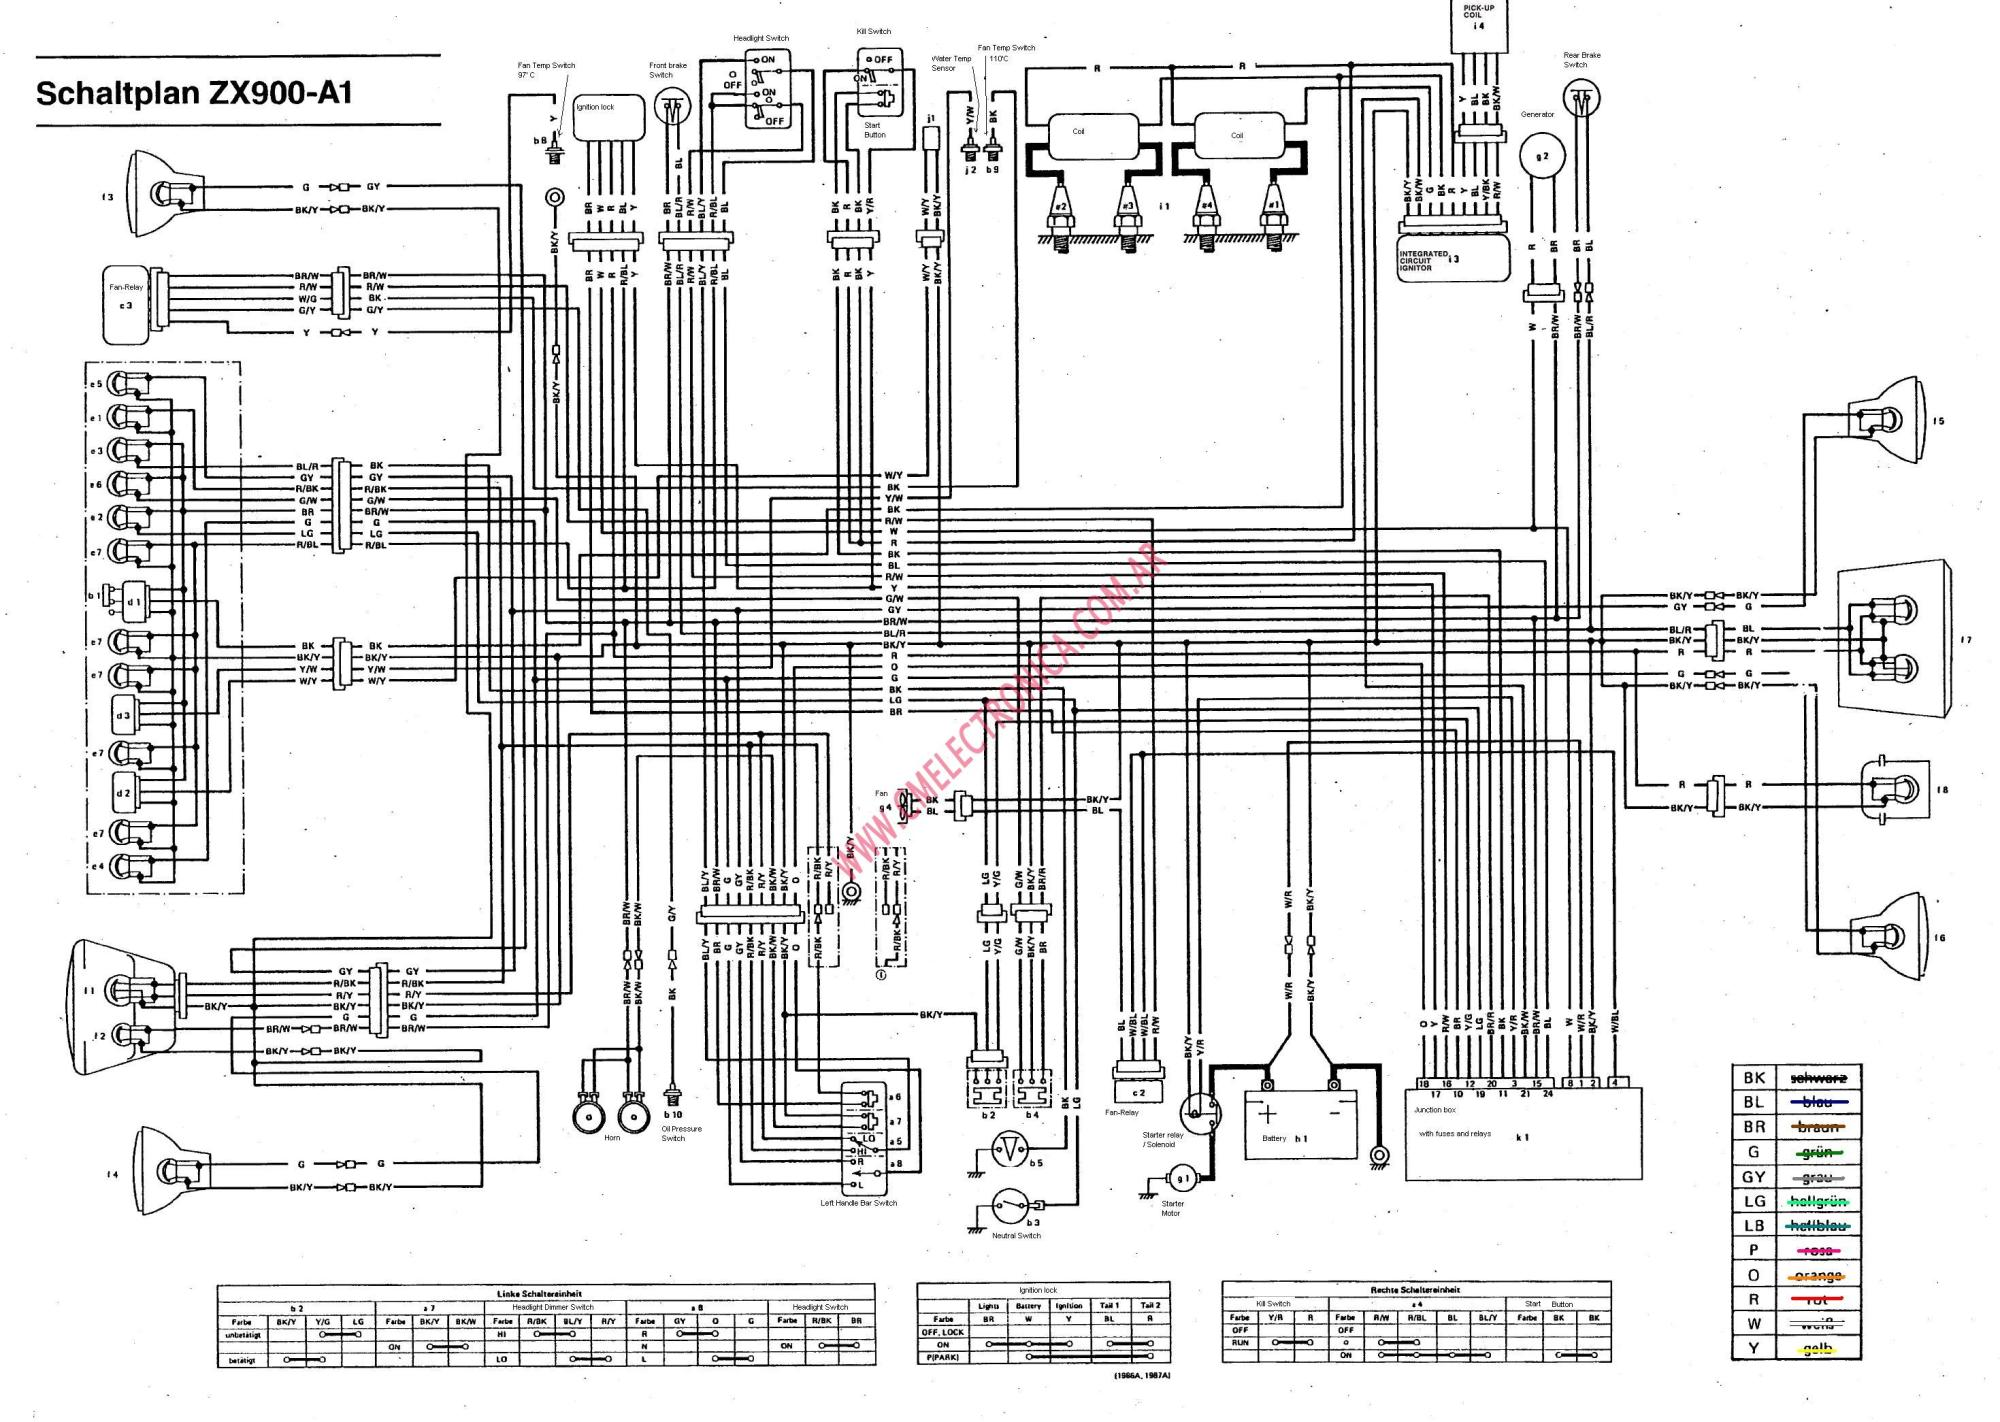 hight resolution of kawasaki gpz 1100 wiring diagram wiring diagram online 1984 kawasaki gpz 1100 gpz 1100 wiring diagram